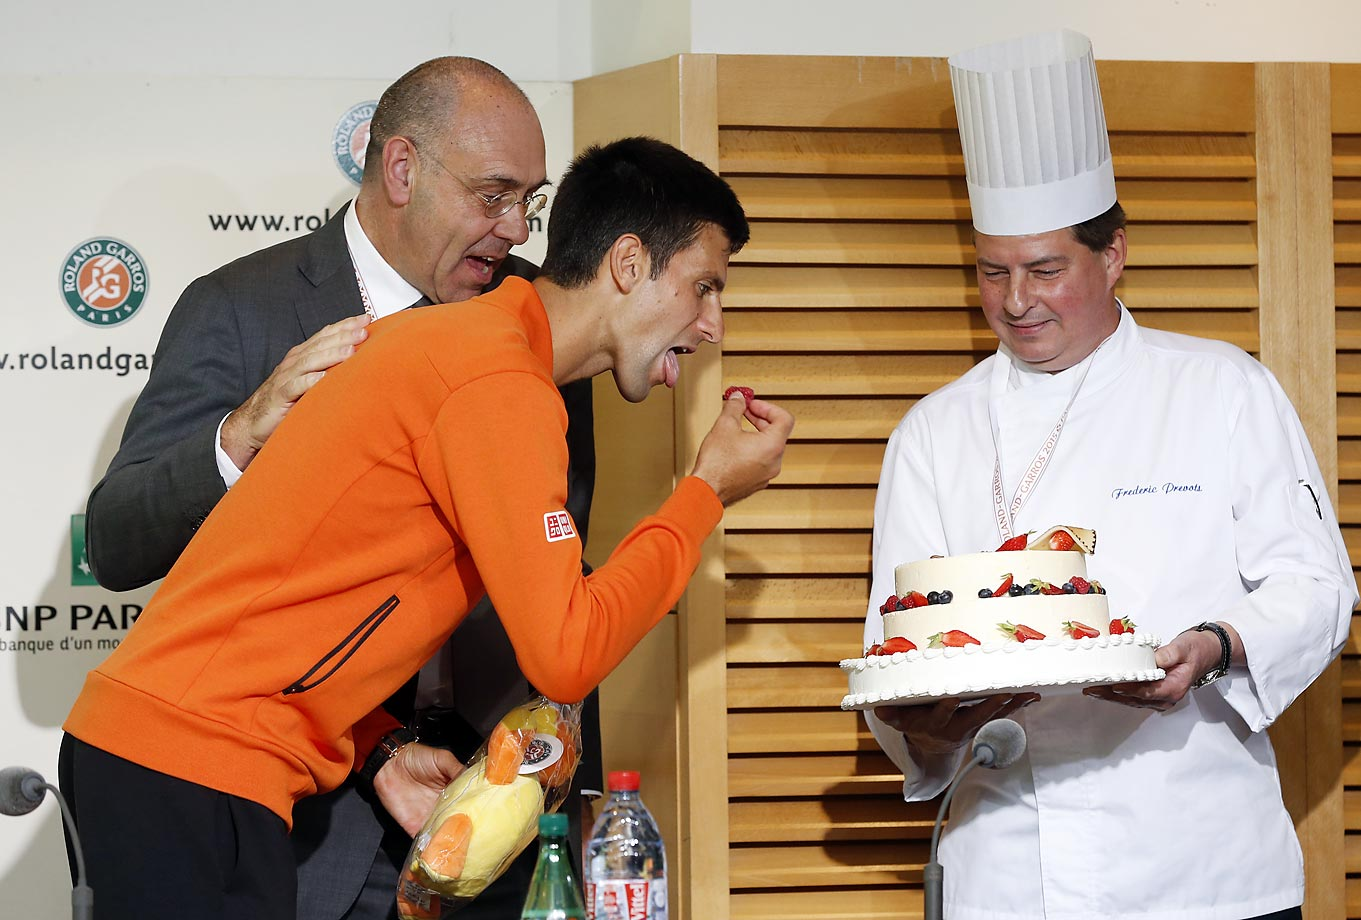 Novak Djokovic celebrates his 28th birthday at the French Open.